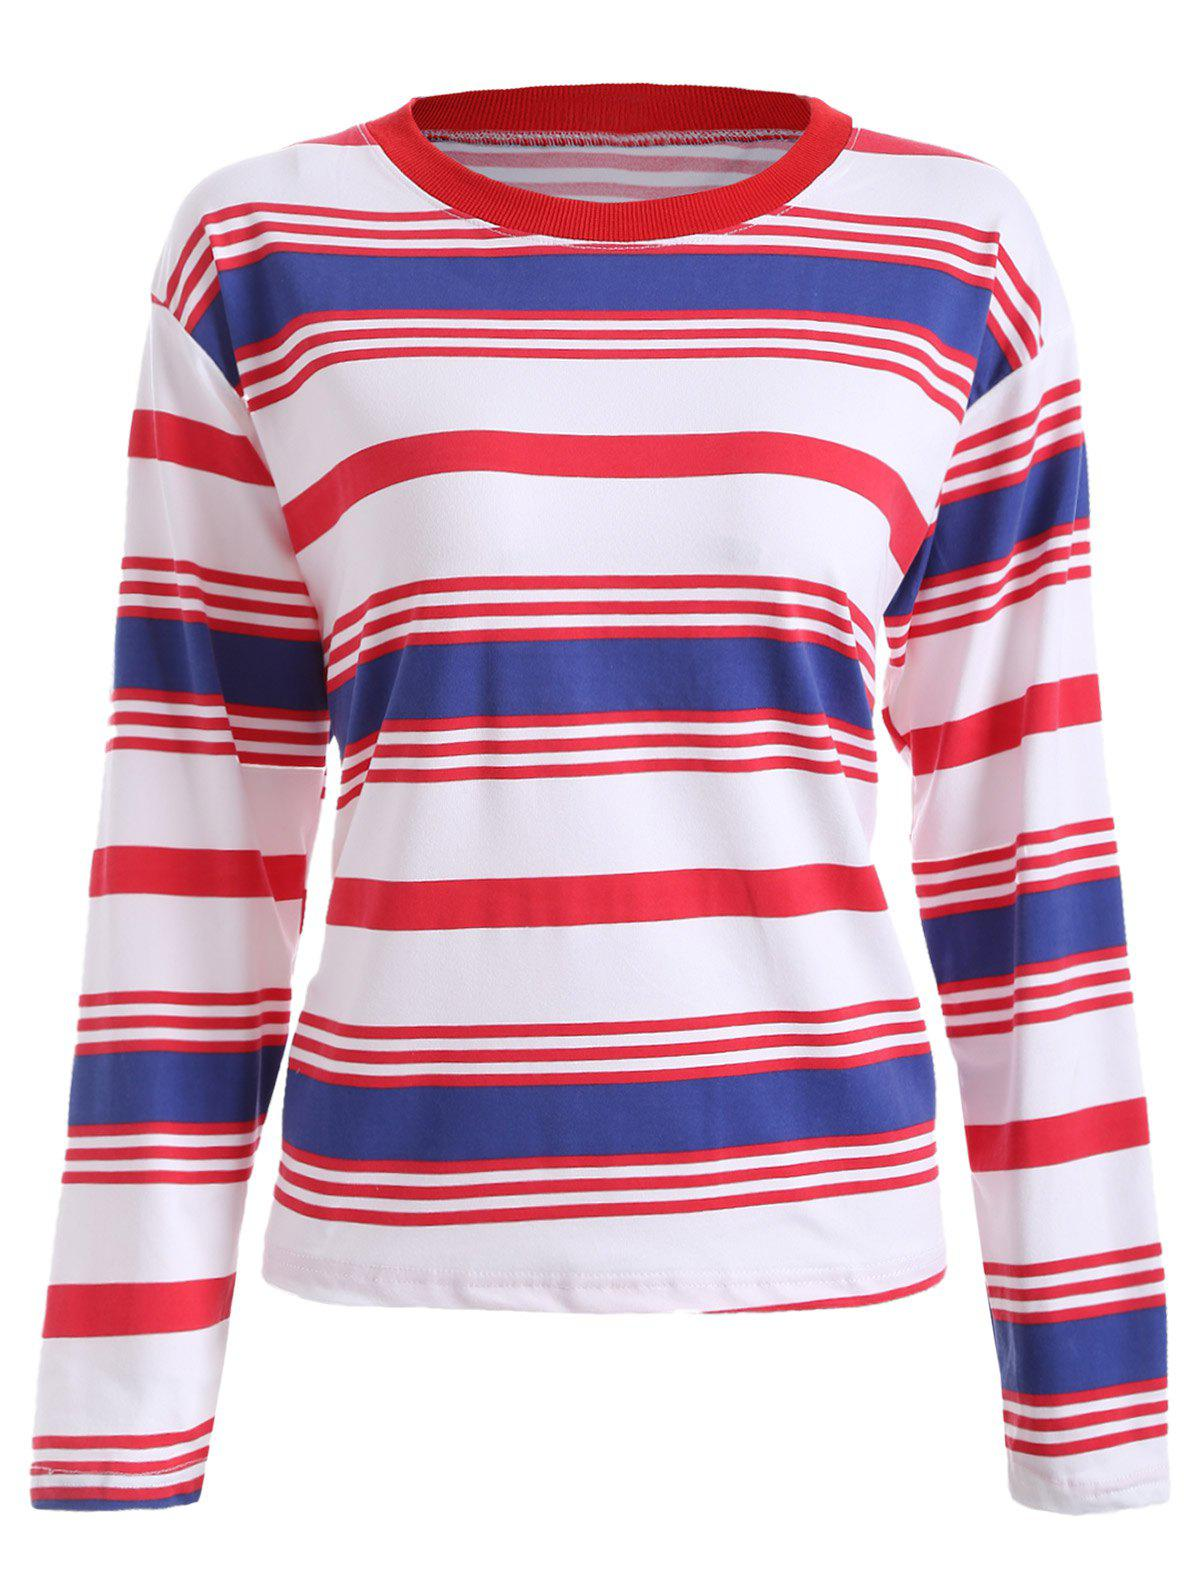 Loose Fitting Striped Print T-Shirt - RED/WHITE/BLUE S